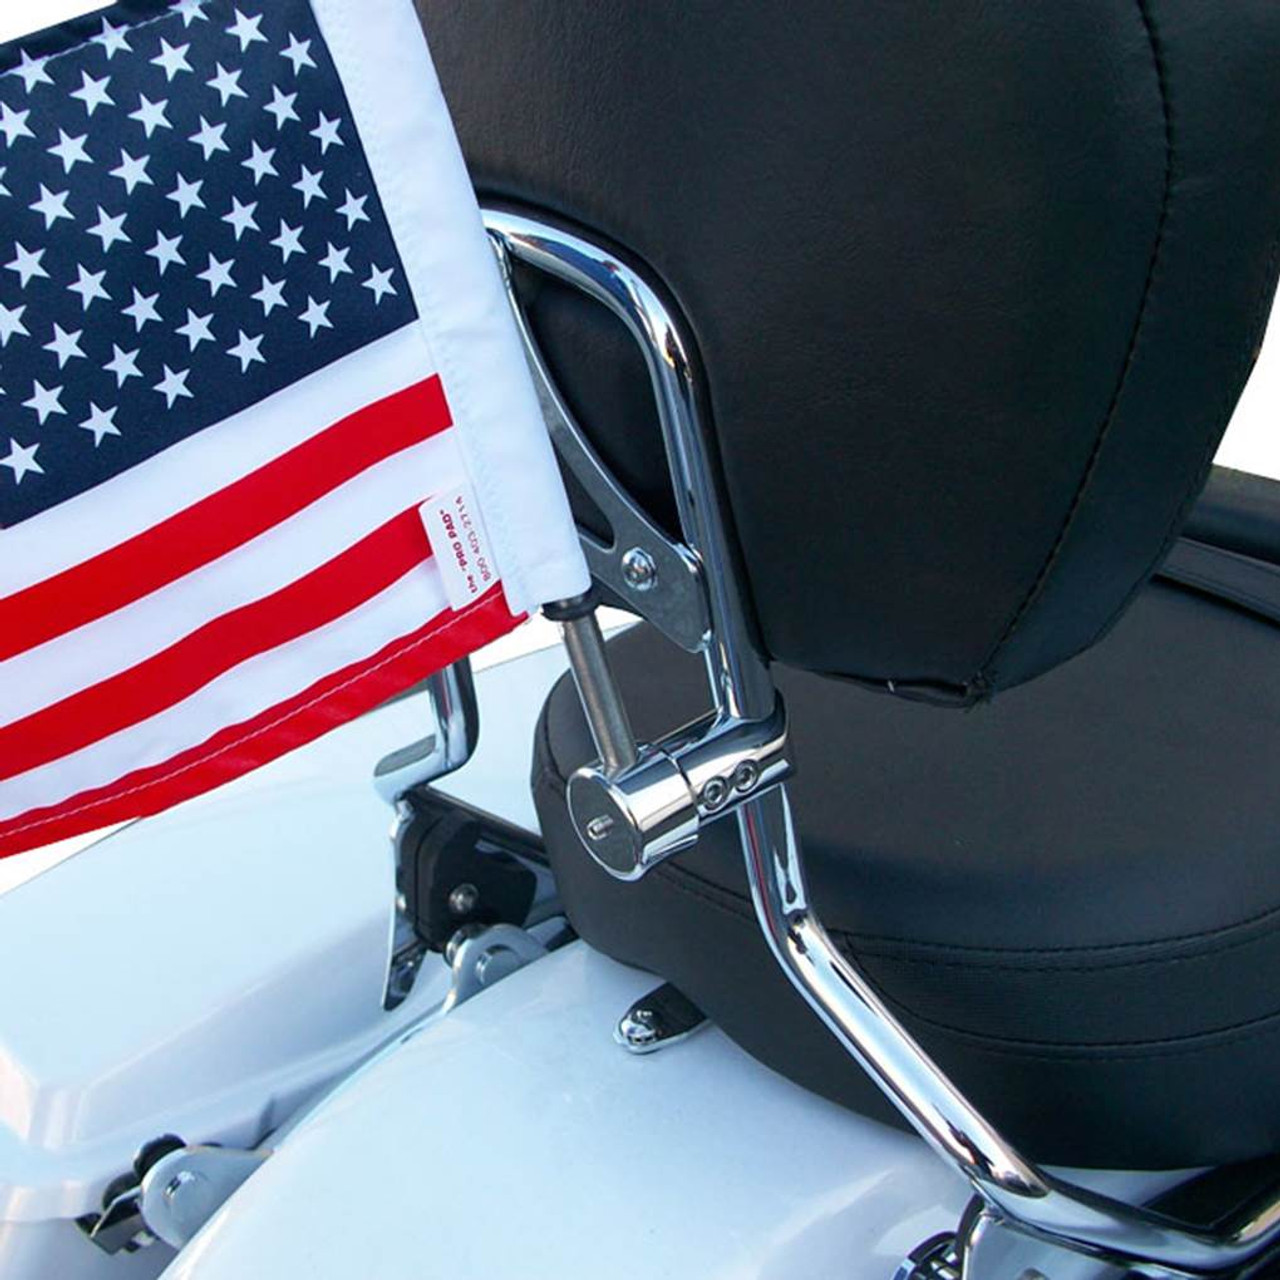 RFM-RDSB5 with 6x9 USA highway flag mounted on Harley sissy bar